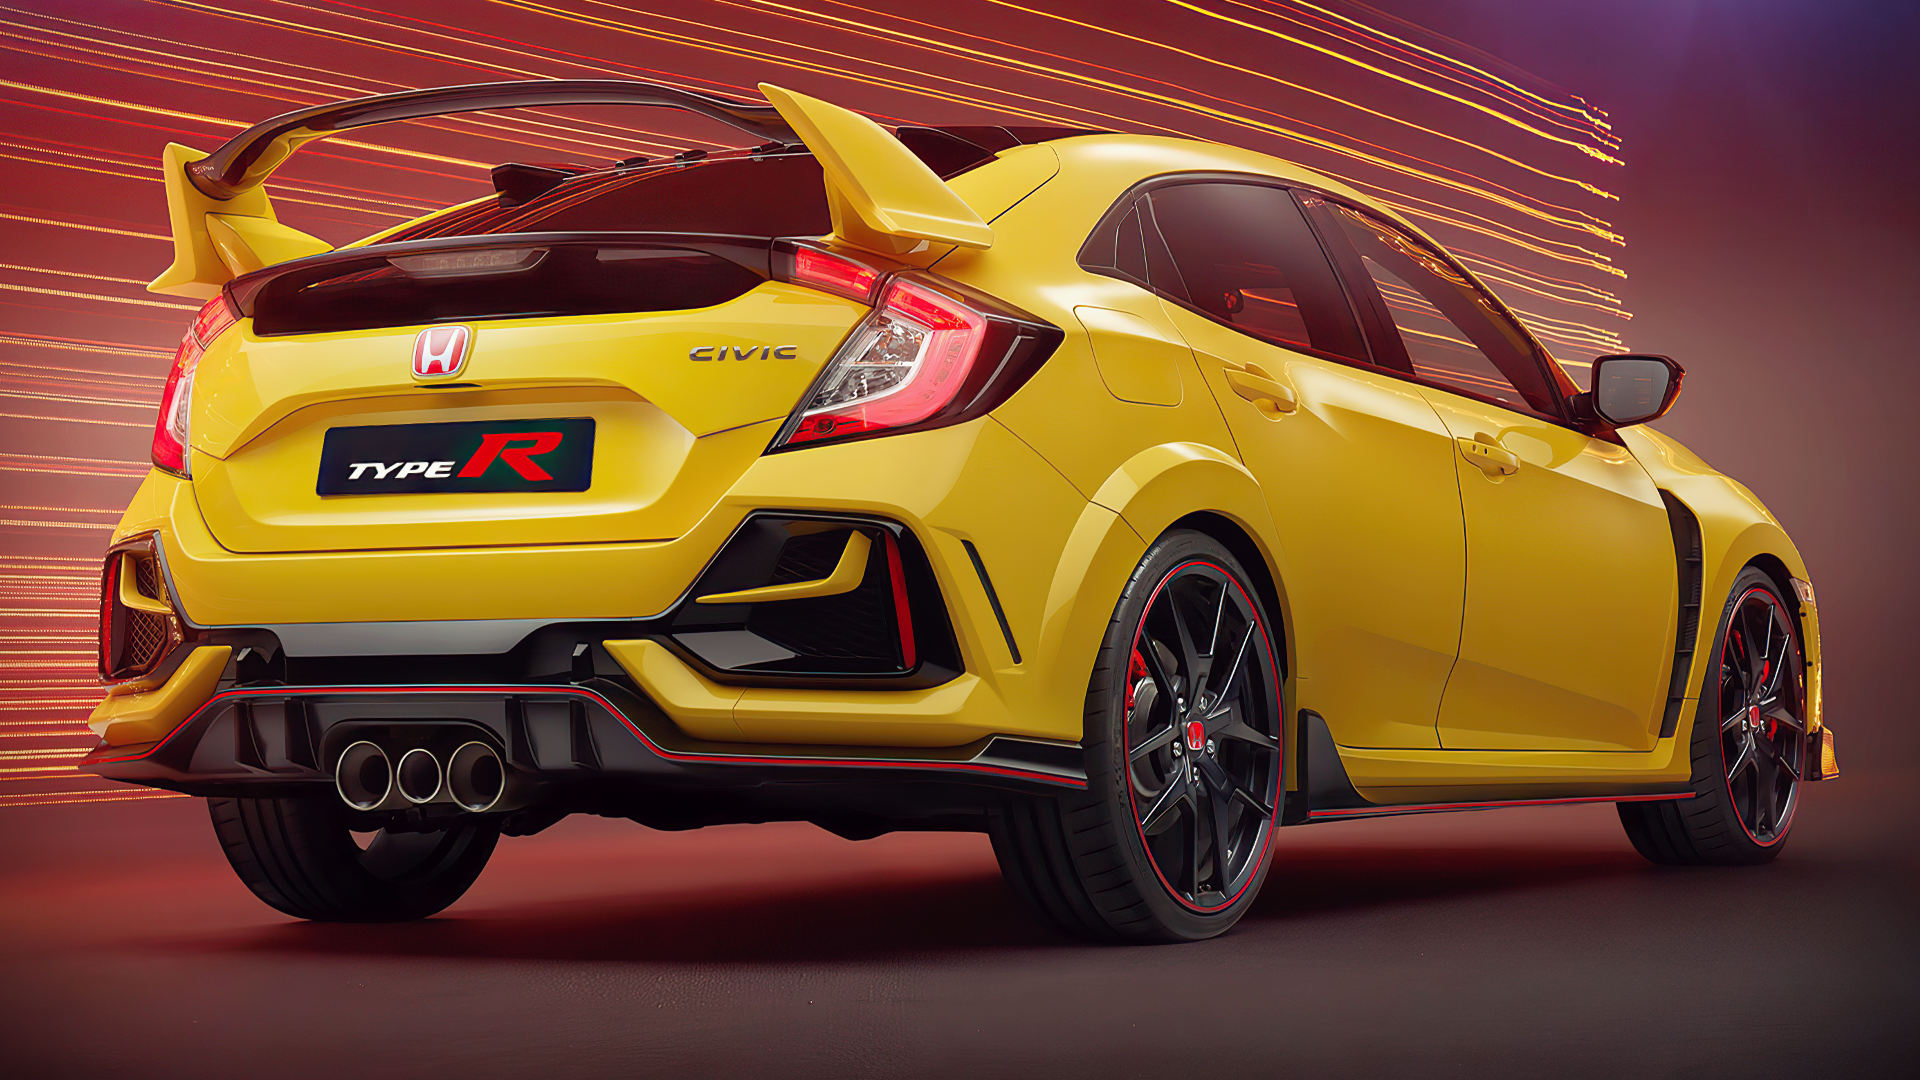 Honda Civic Type R Limited Edition 2021 Back Wallpaper